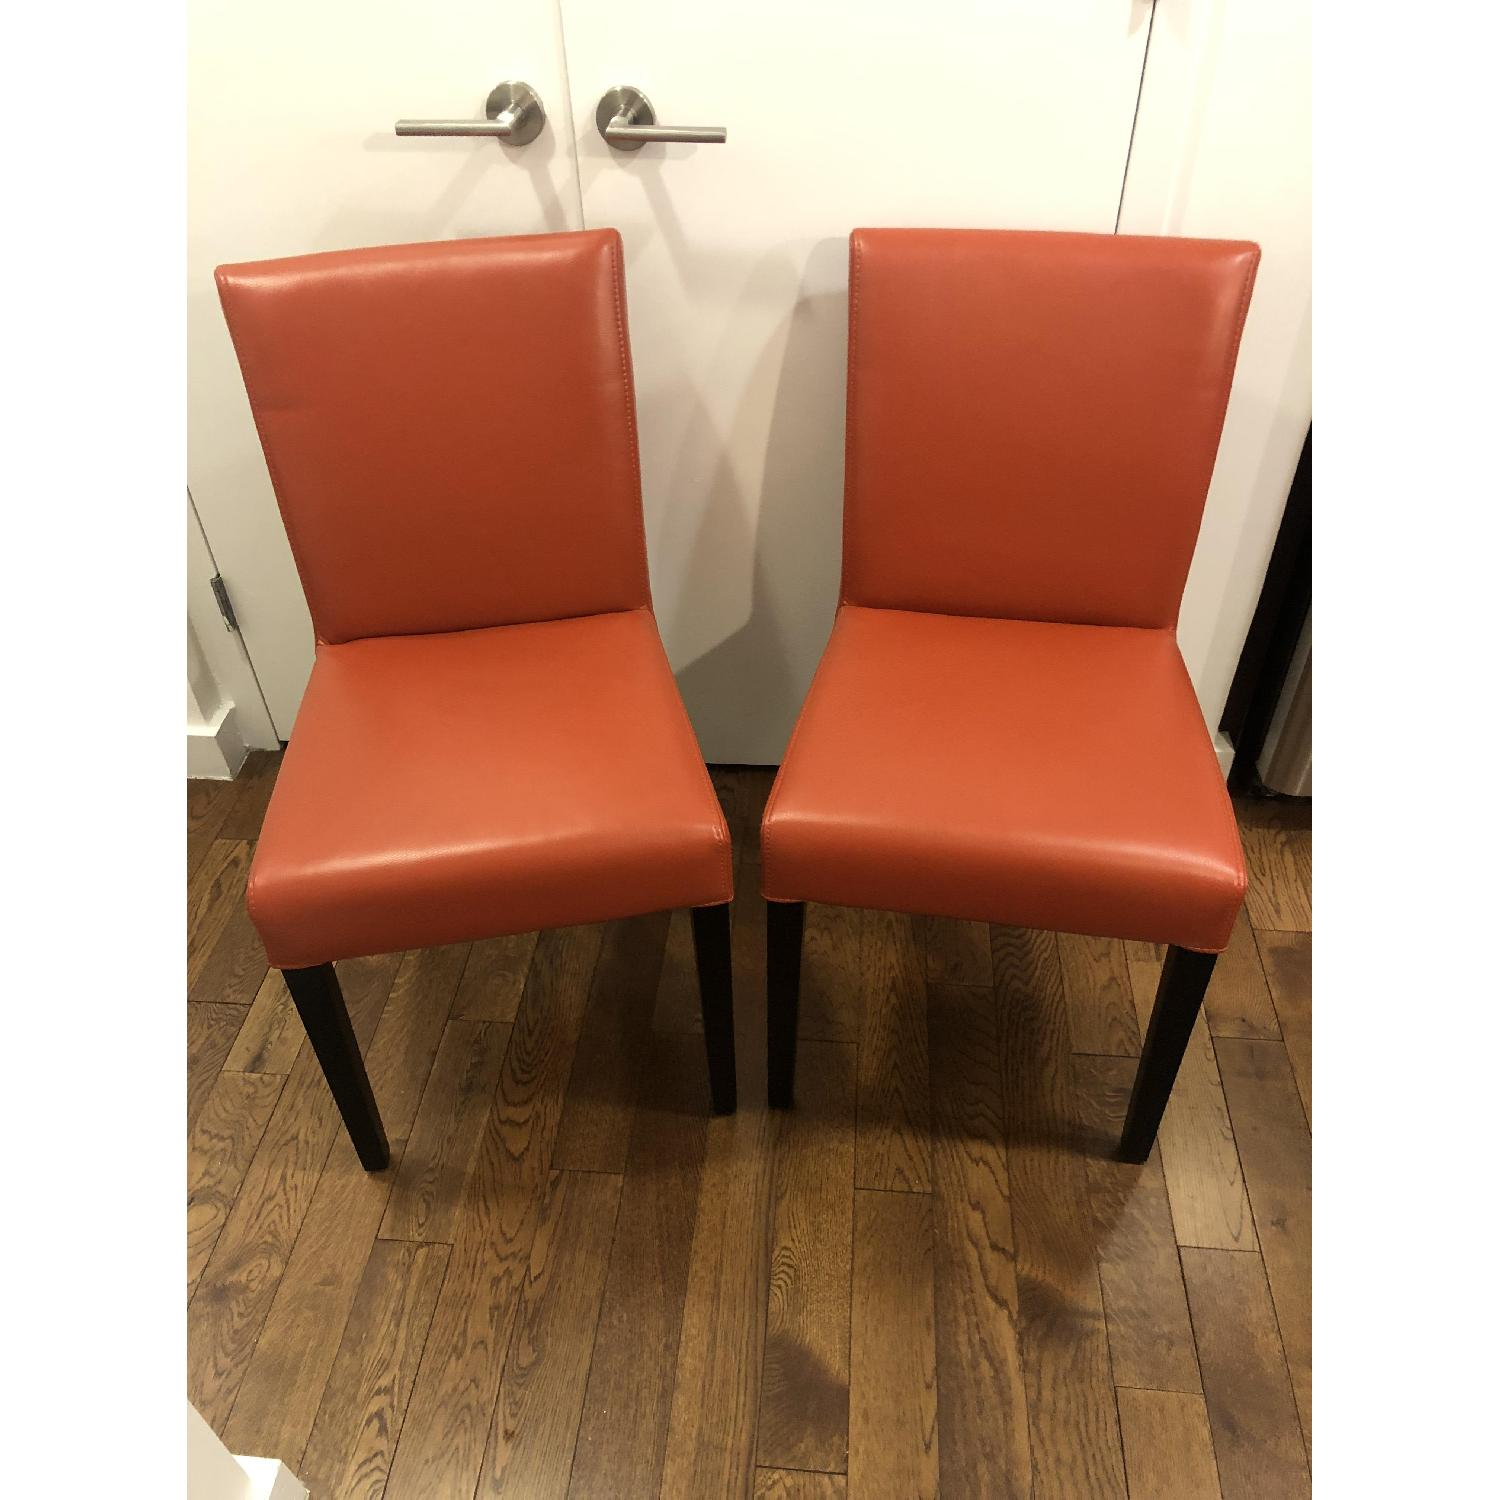 Crate & Barrel Lowe Persimmon Dining Chairs - image-1